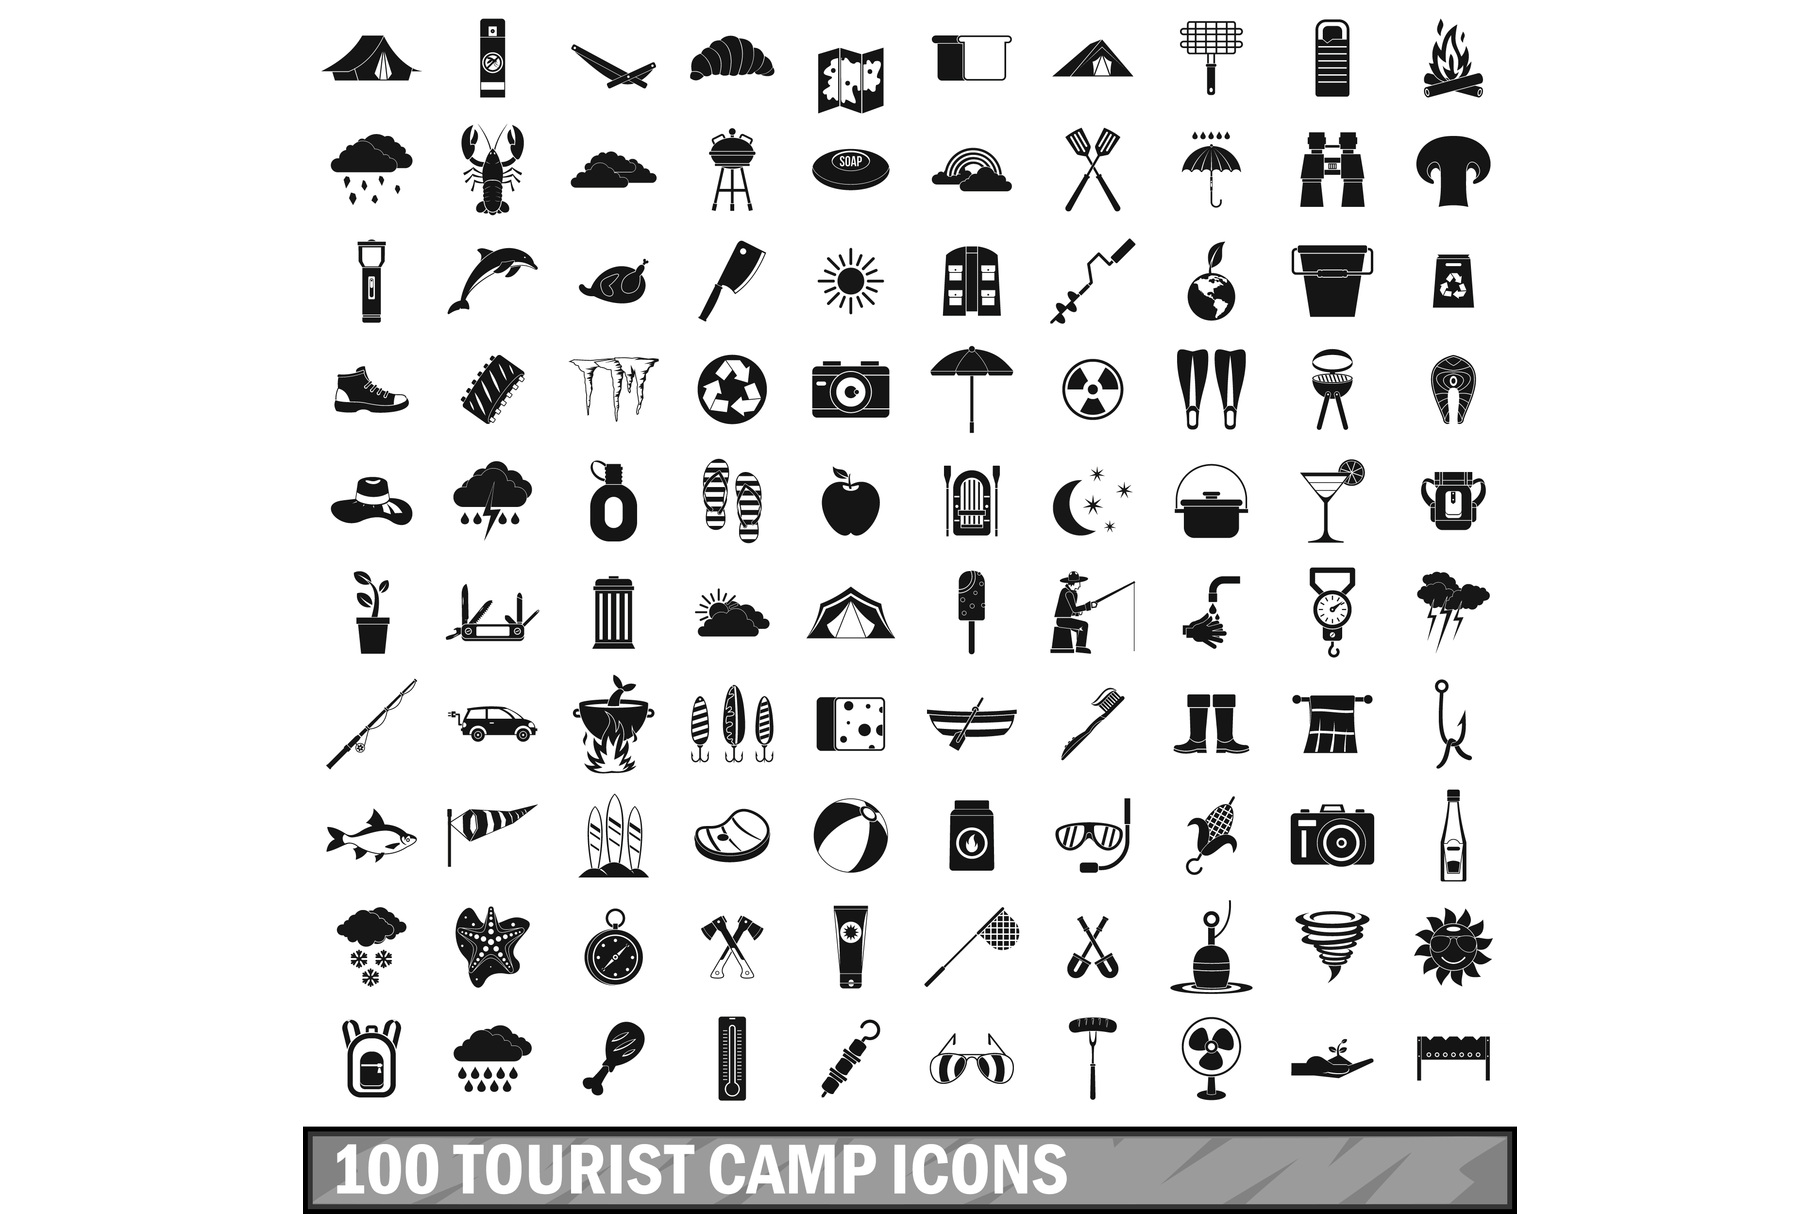 100 tourist camp icons set, simple style example image 1